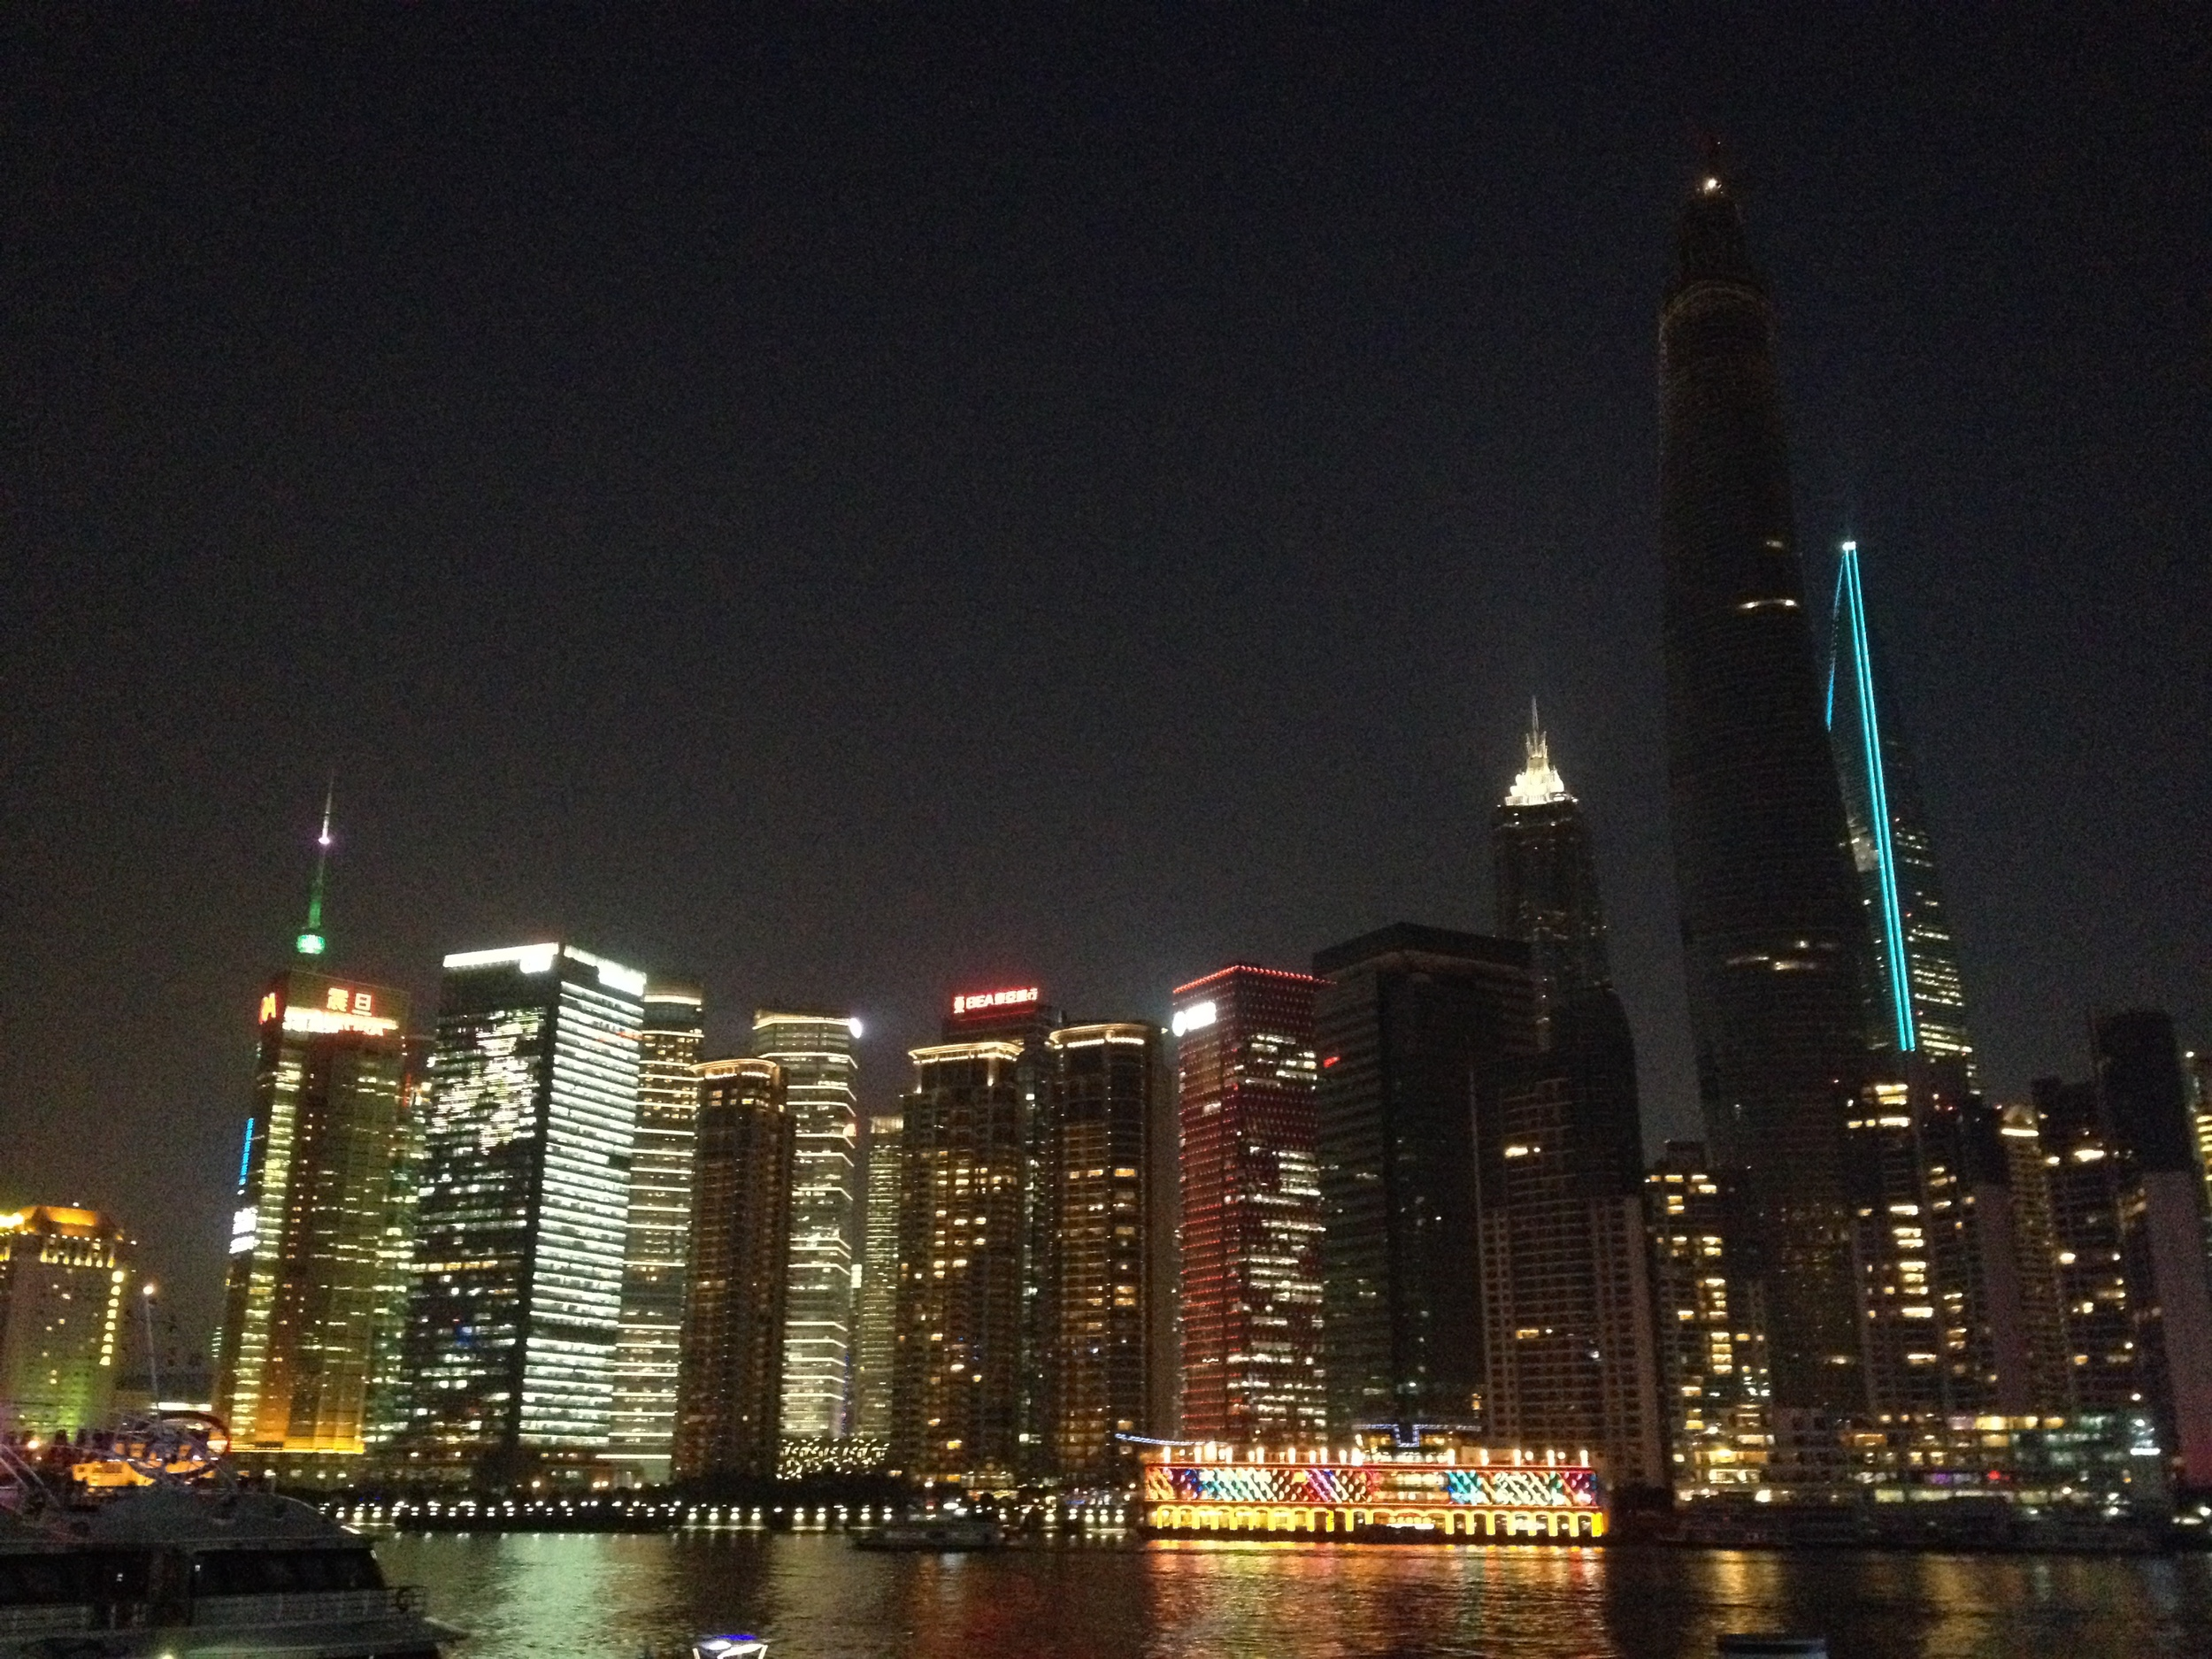 Shanghai's skyline at night.